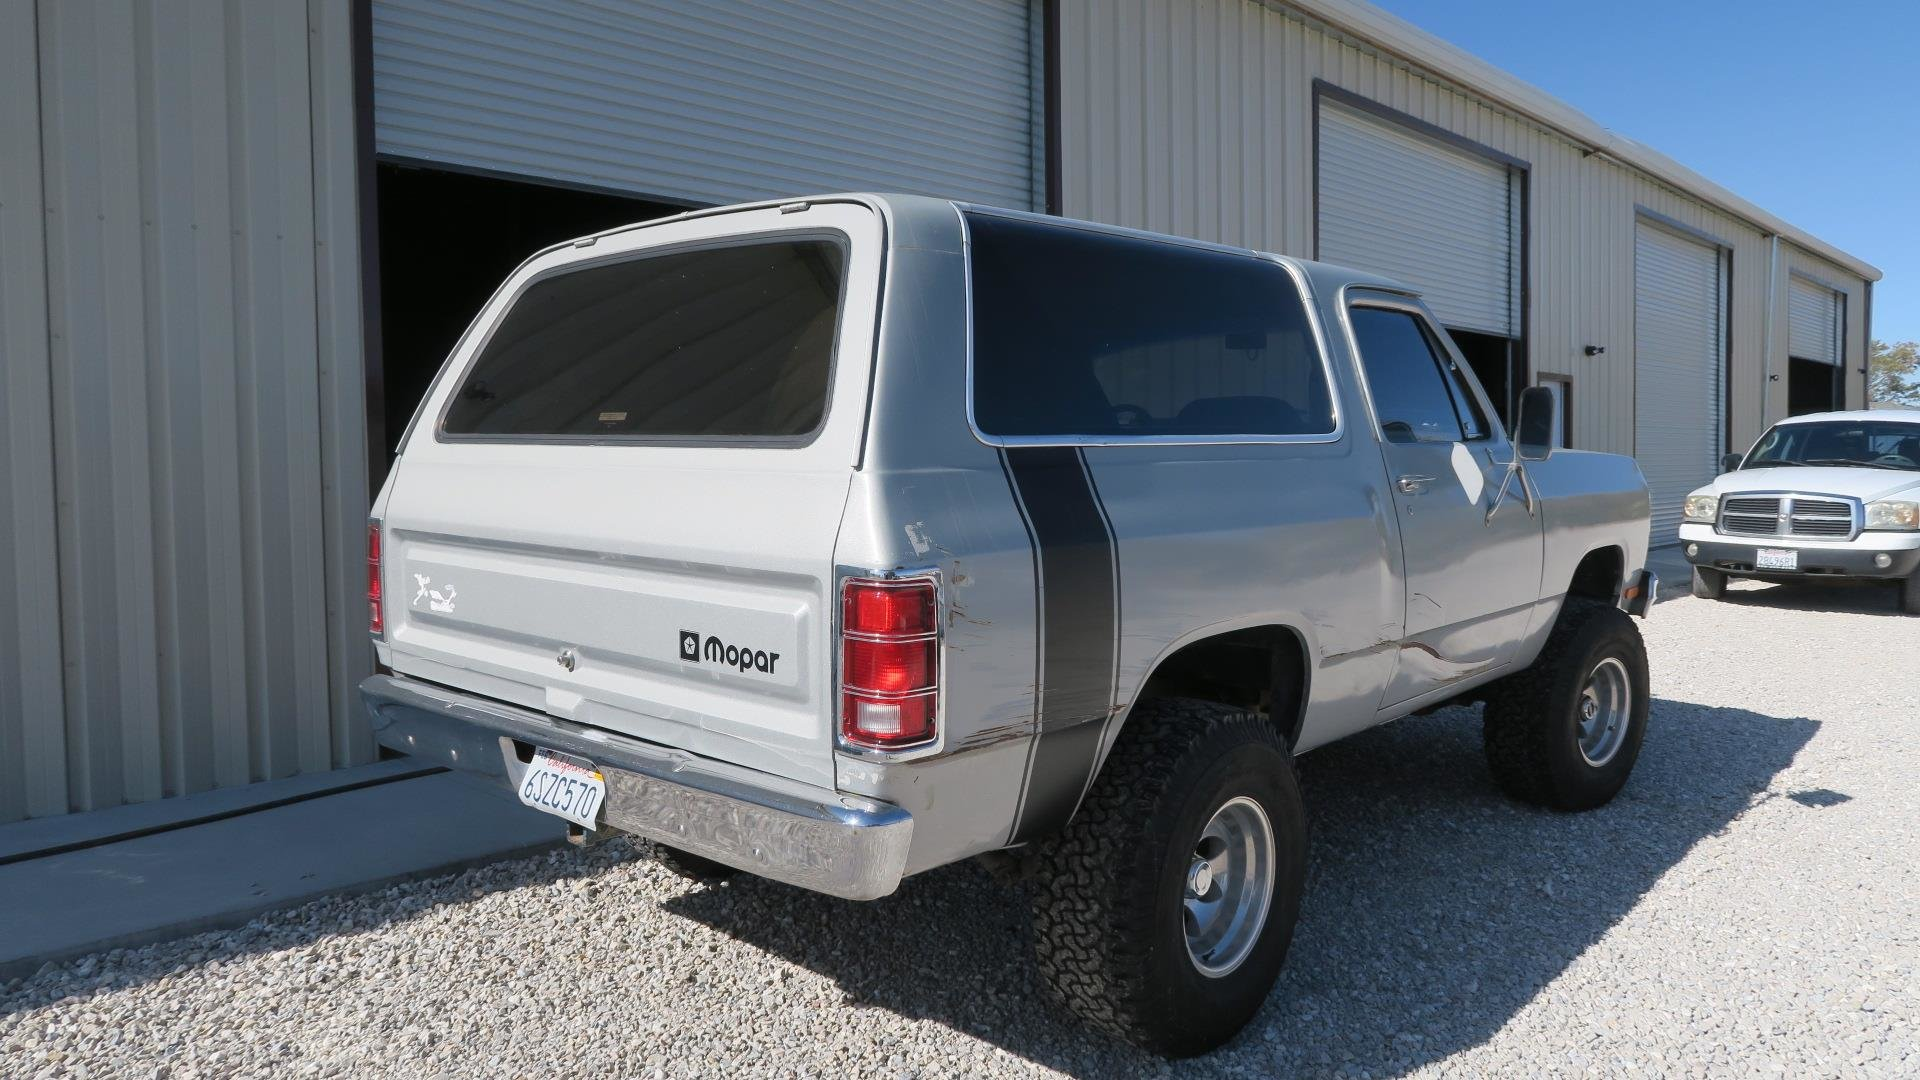 1984 Dodge Ram Charger 360 V8 4X4 Silver 50k miles AT $7.9k For Sale (picture 3 of 6)